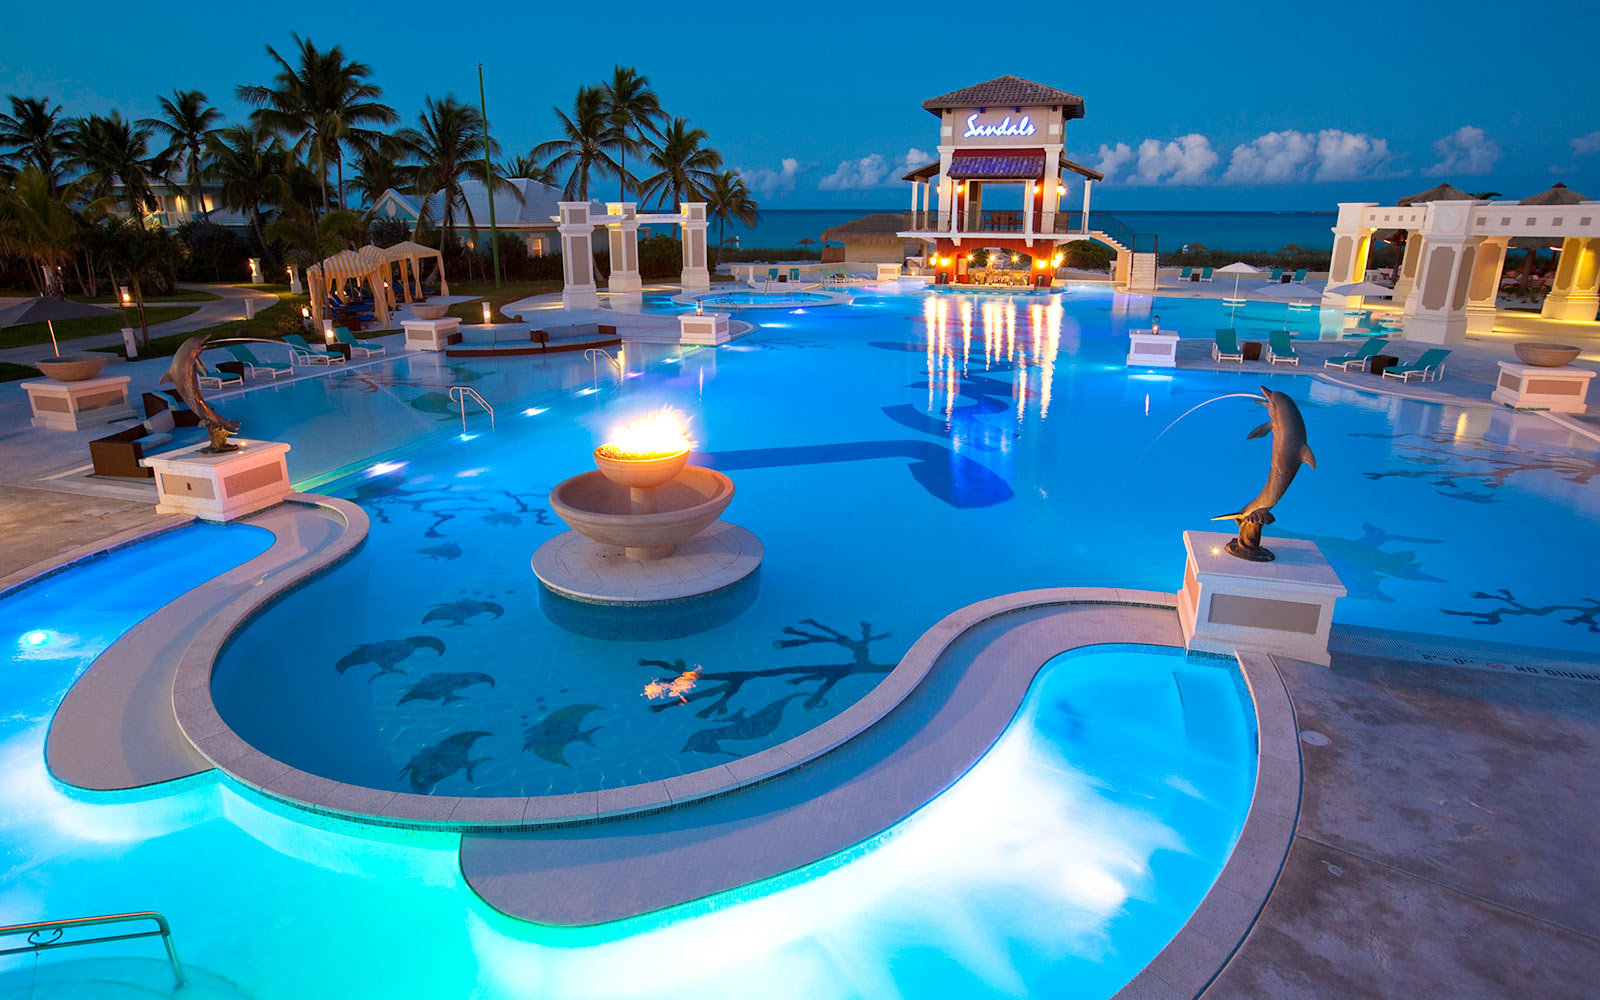 Sandals Emerald Bay in the Exumas